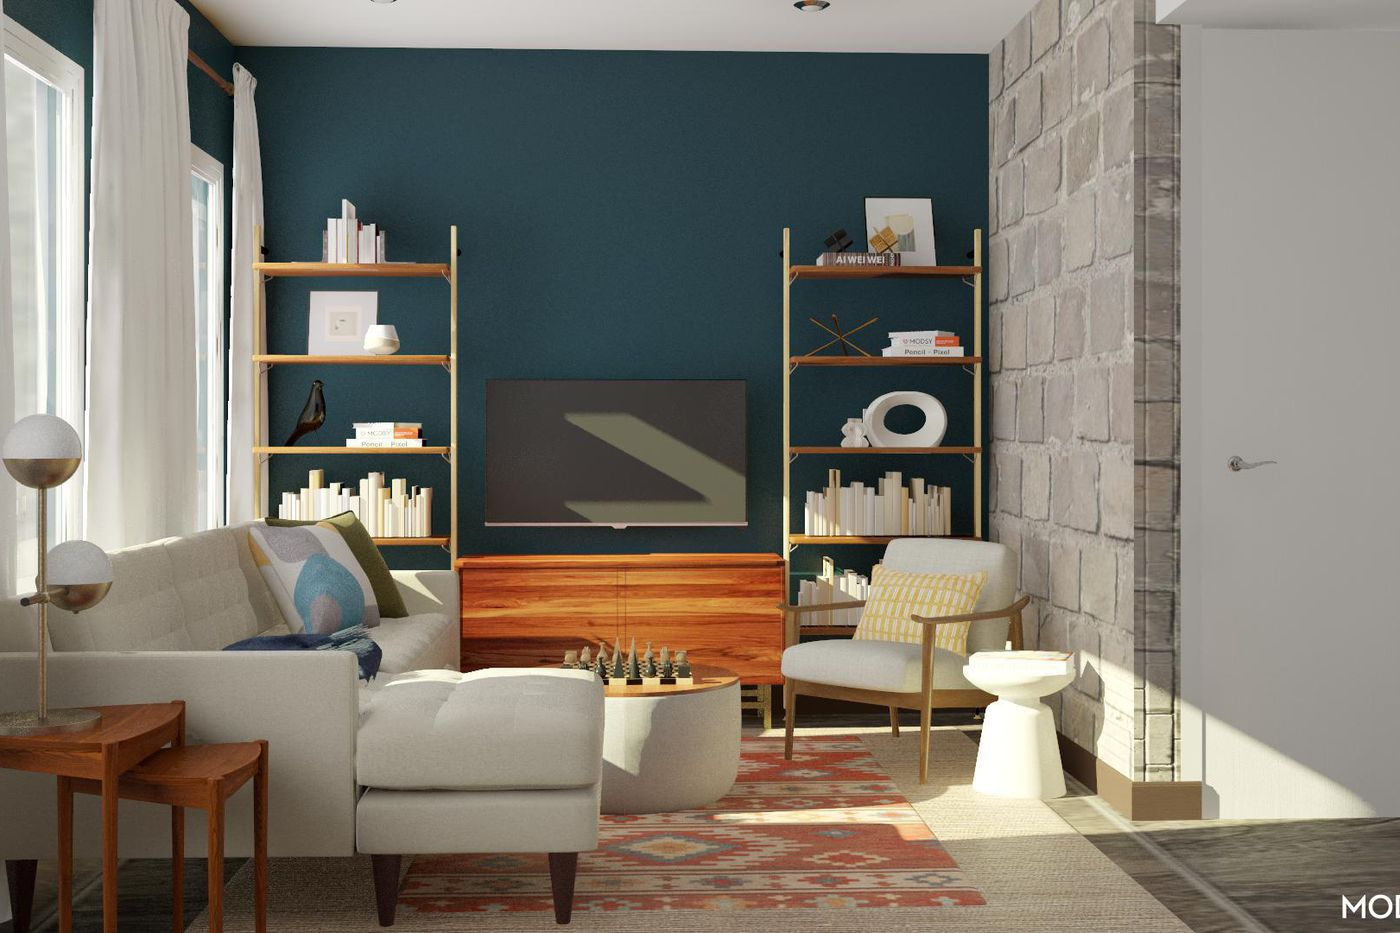 Virtual home makeover: testing Modsy, Havenly, Ikea on my NYC